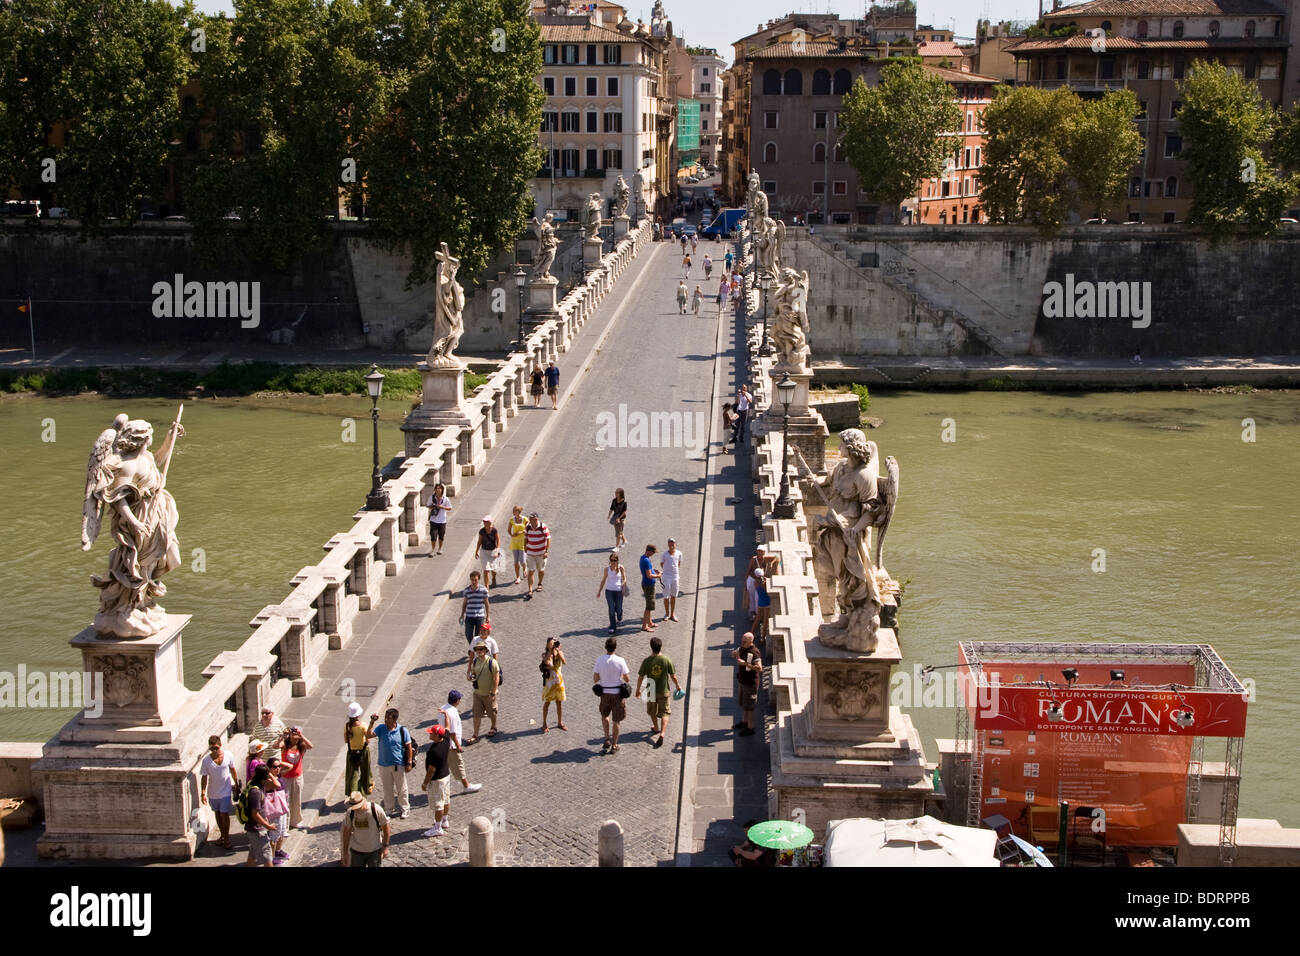 Ponte sant Angelo over the river Tiber in Rome Italy - Stock Image